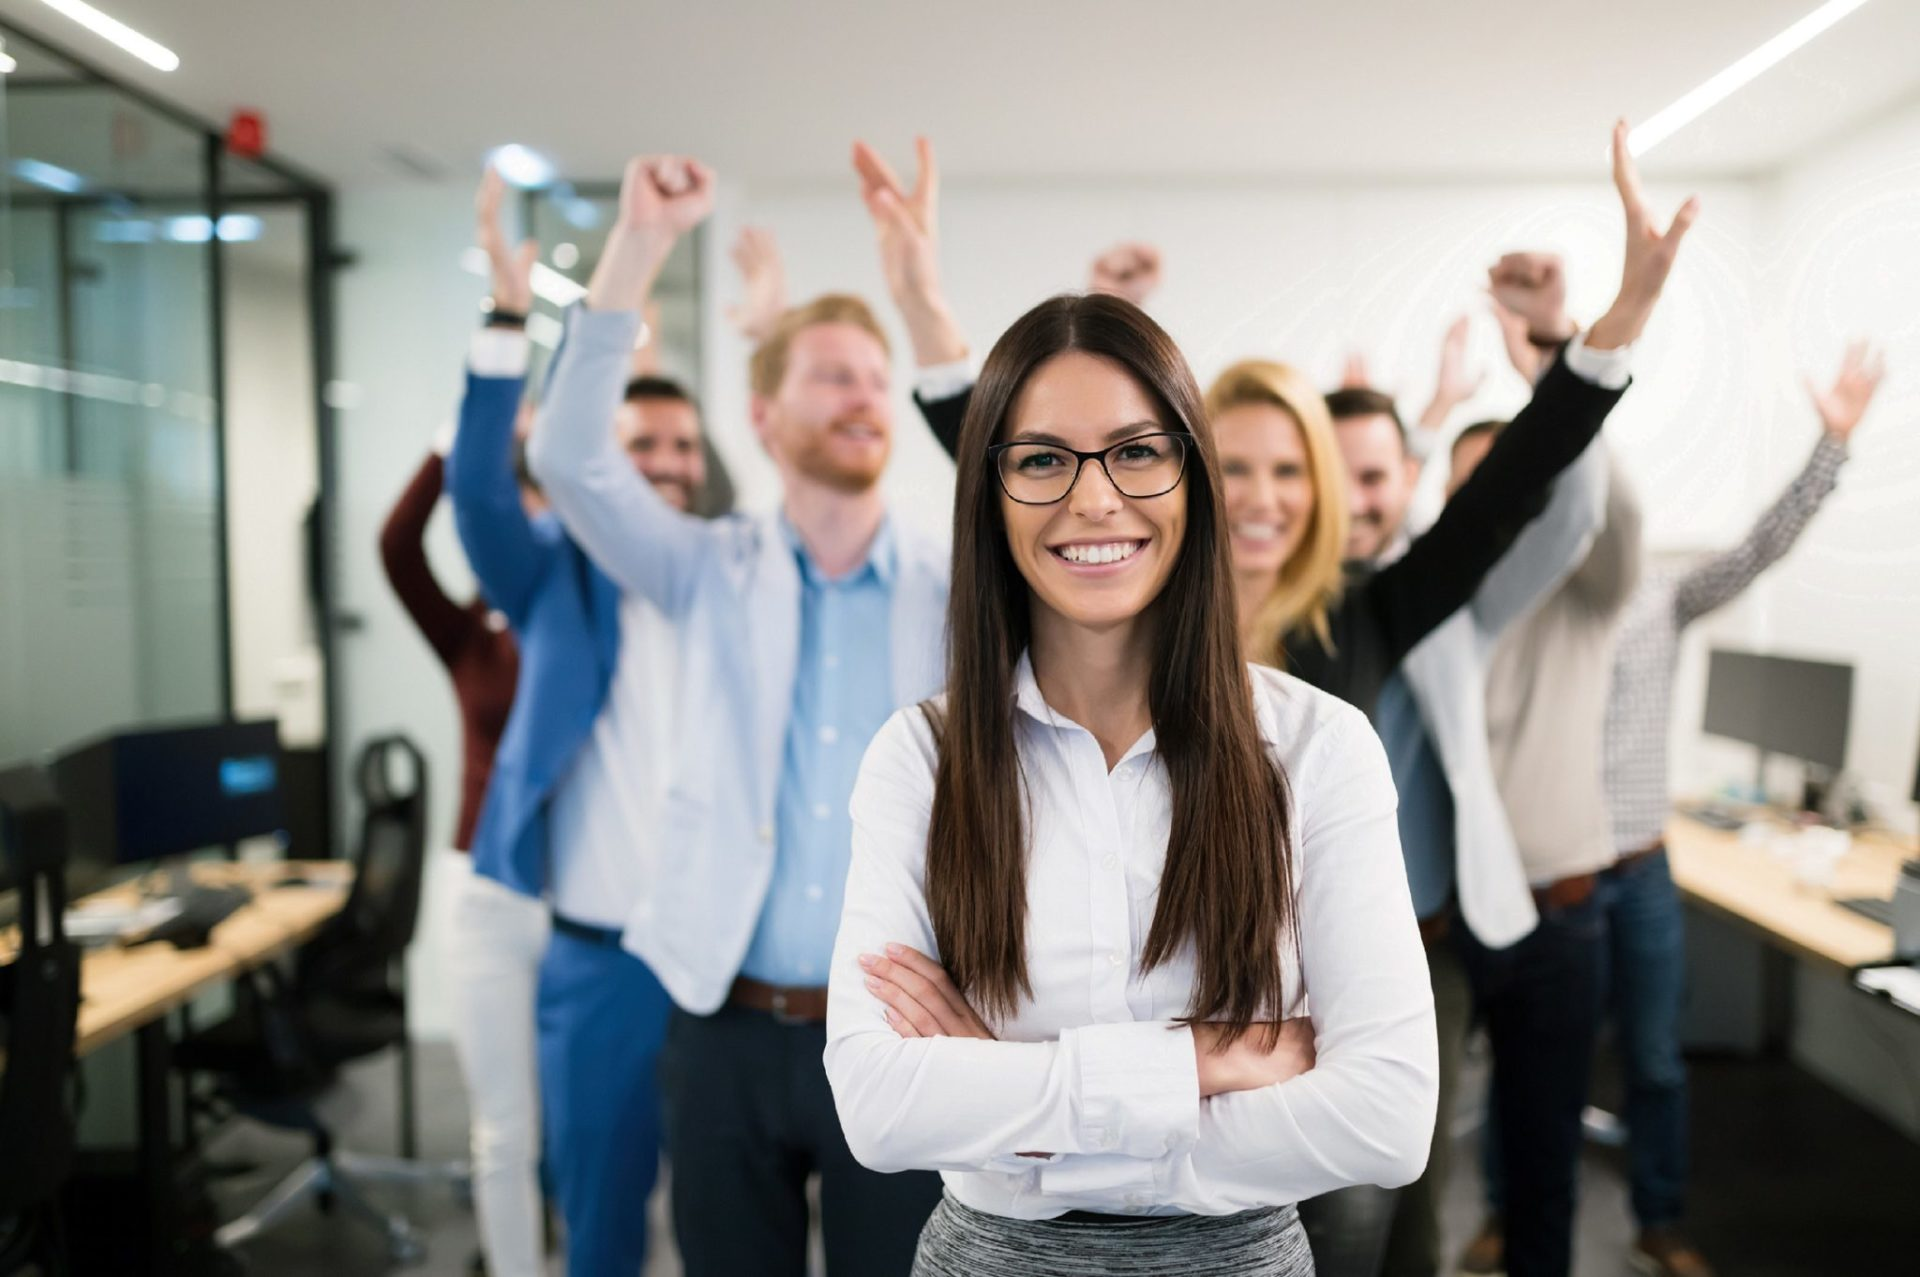 Mental Health. An image of a group of employees smiling at the camera and celebrating